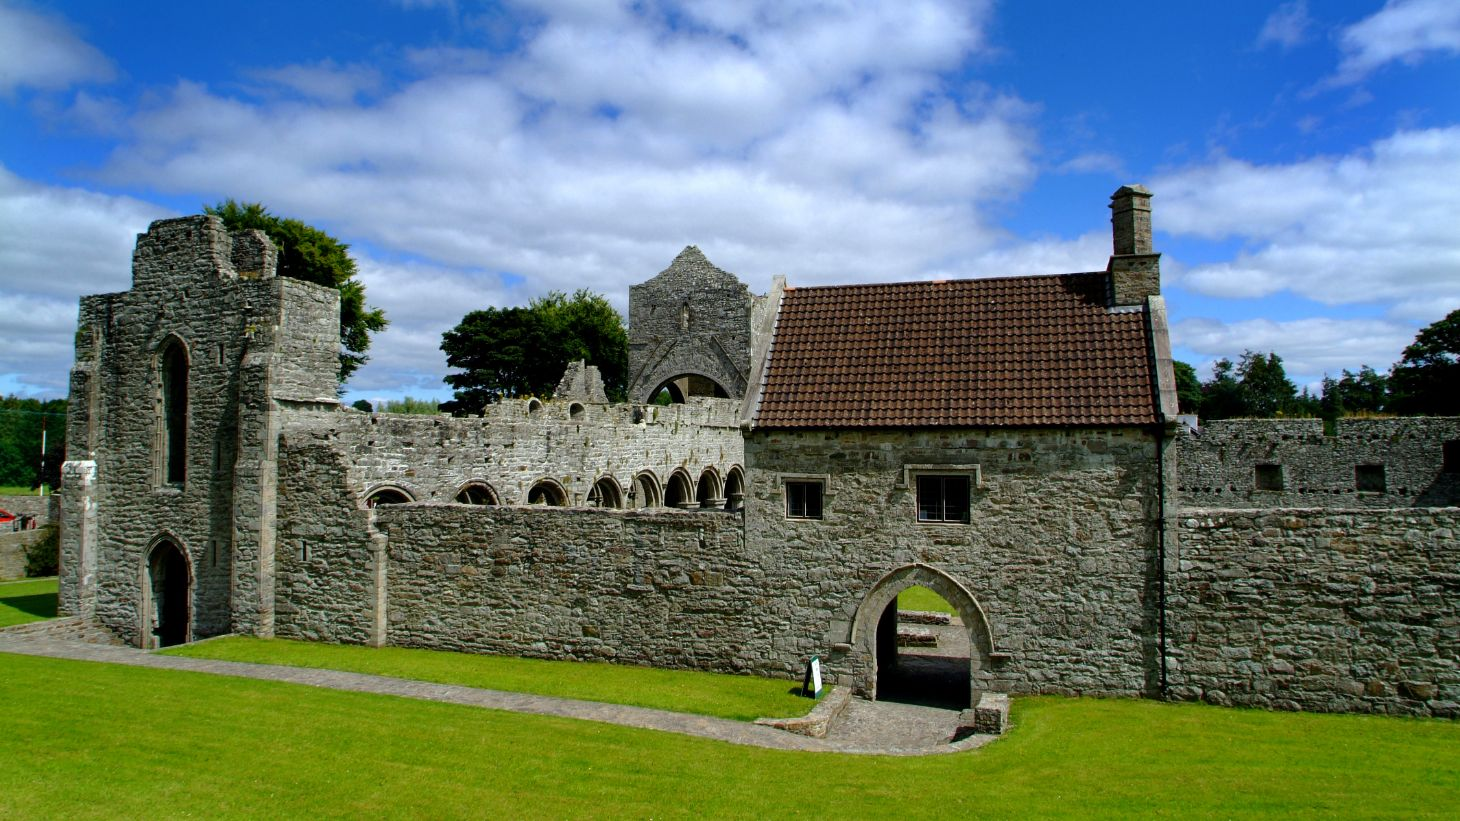 Take a visit to the ruins of Boyle Abbey.